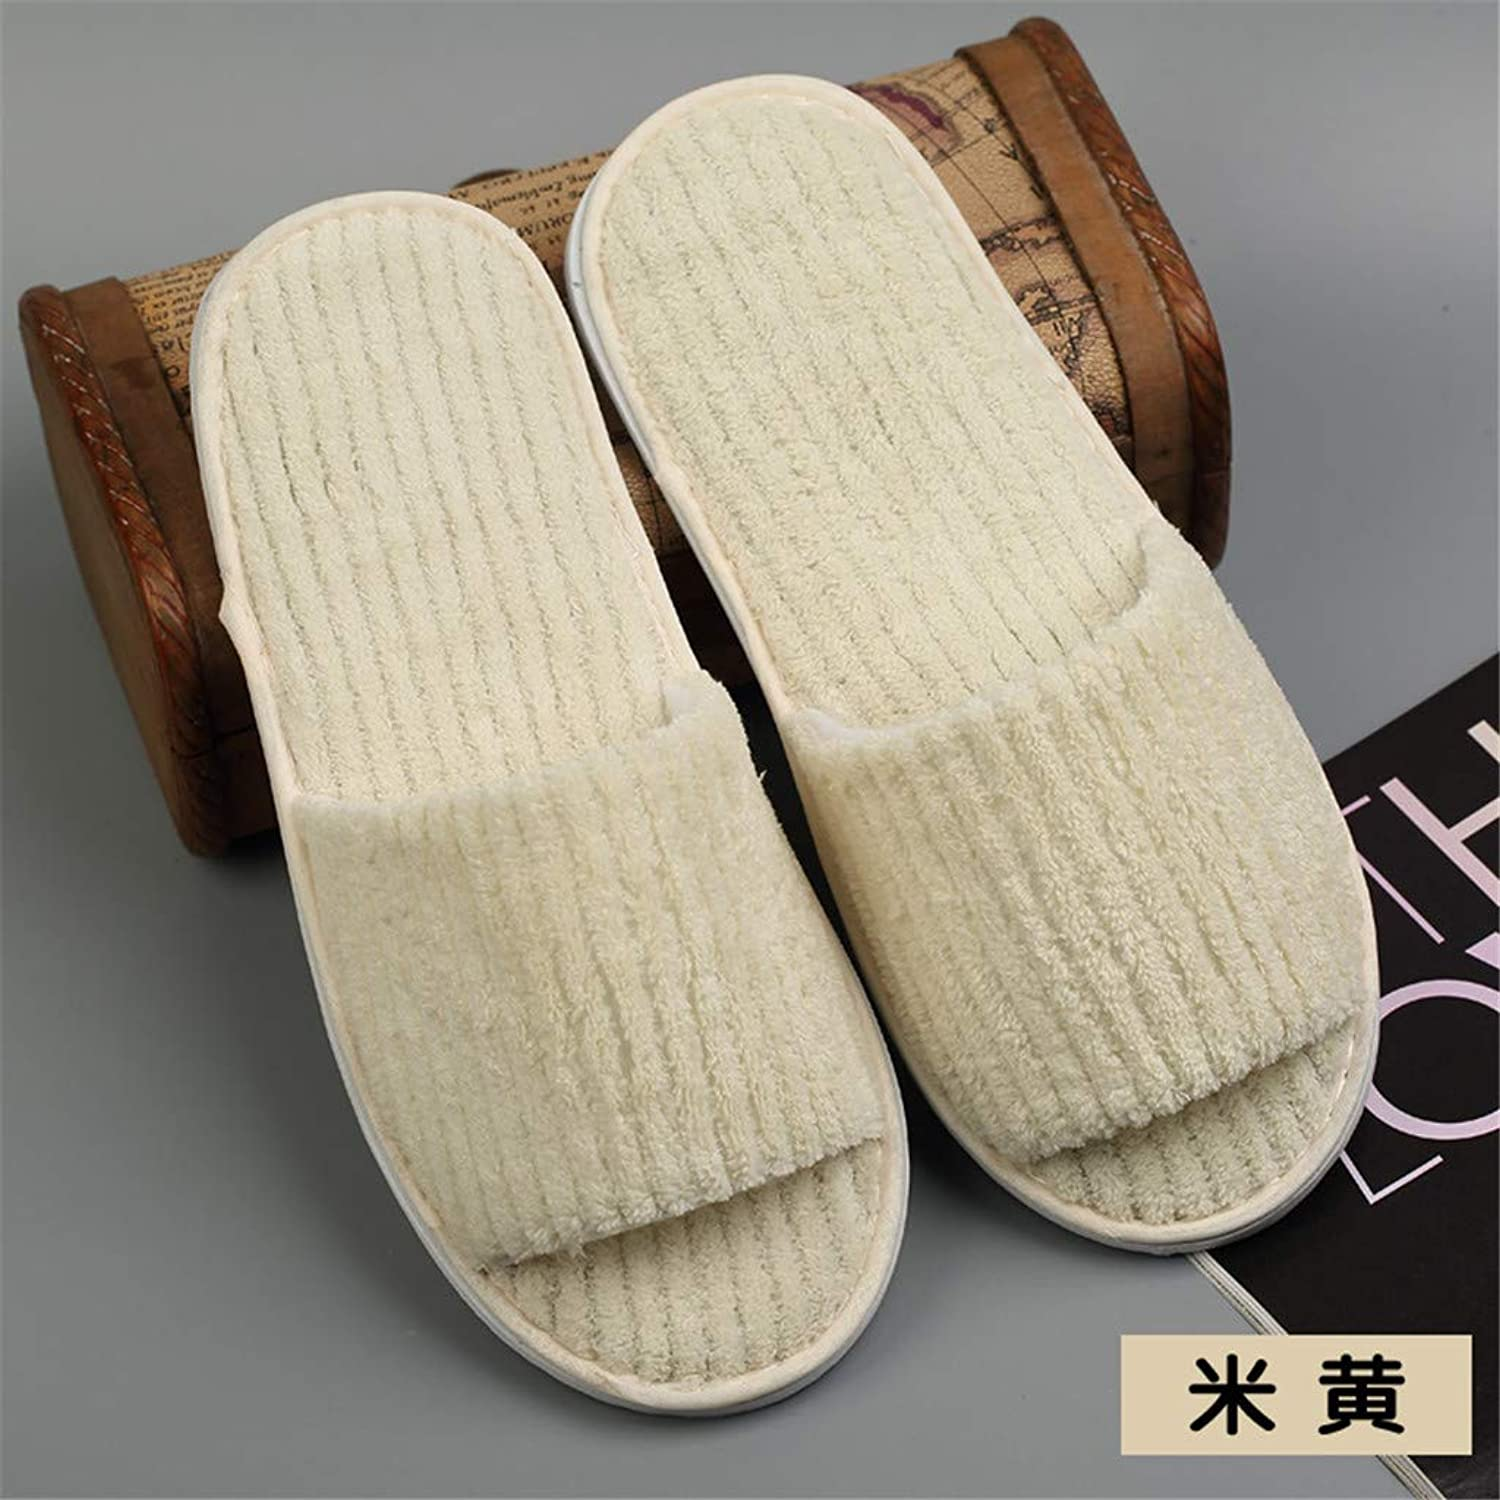 10 Pairs Coral Fleece Open Toe Slippers for Spa, Party Guest, Hotel and Travel, Washable and Non-Disposable, Easily Foldable and Portable,I